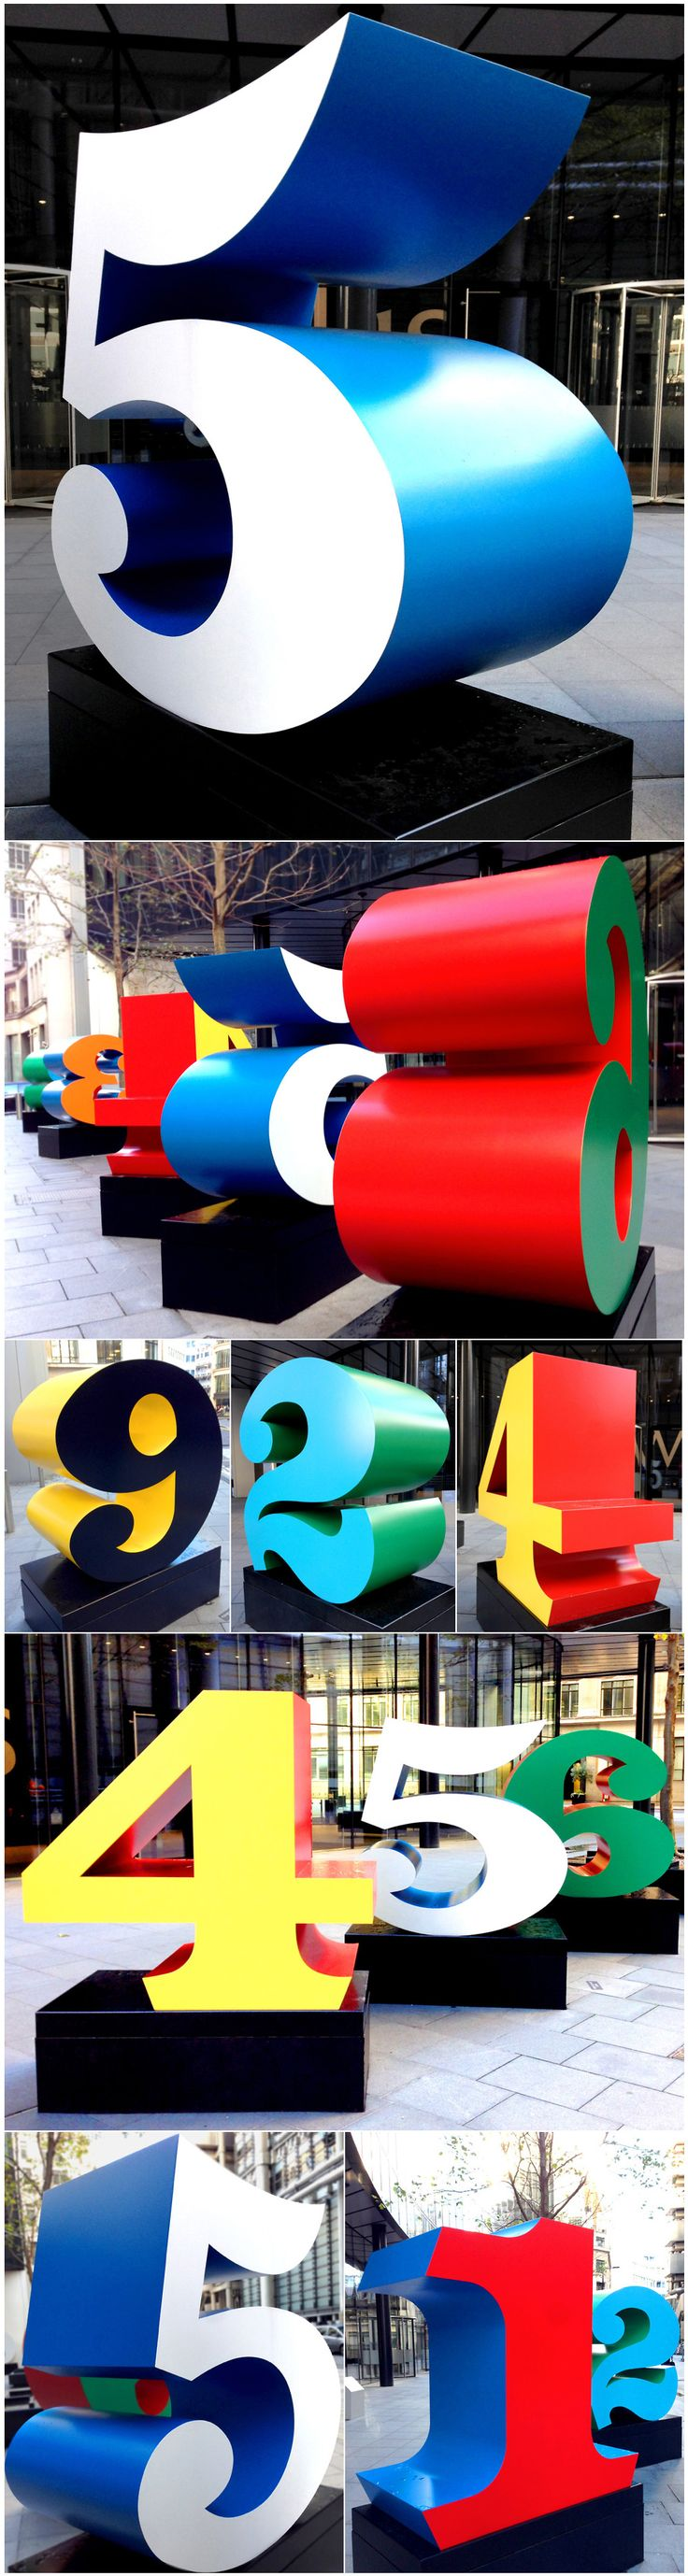 """Numbers"" is a piece by Robert Indiana."